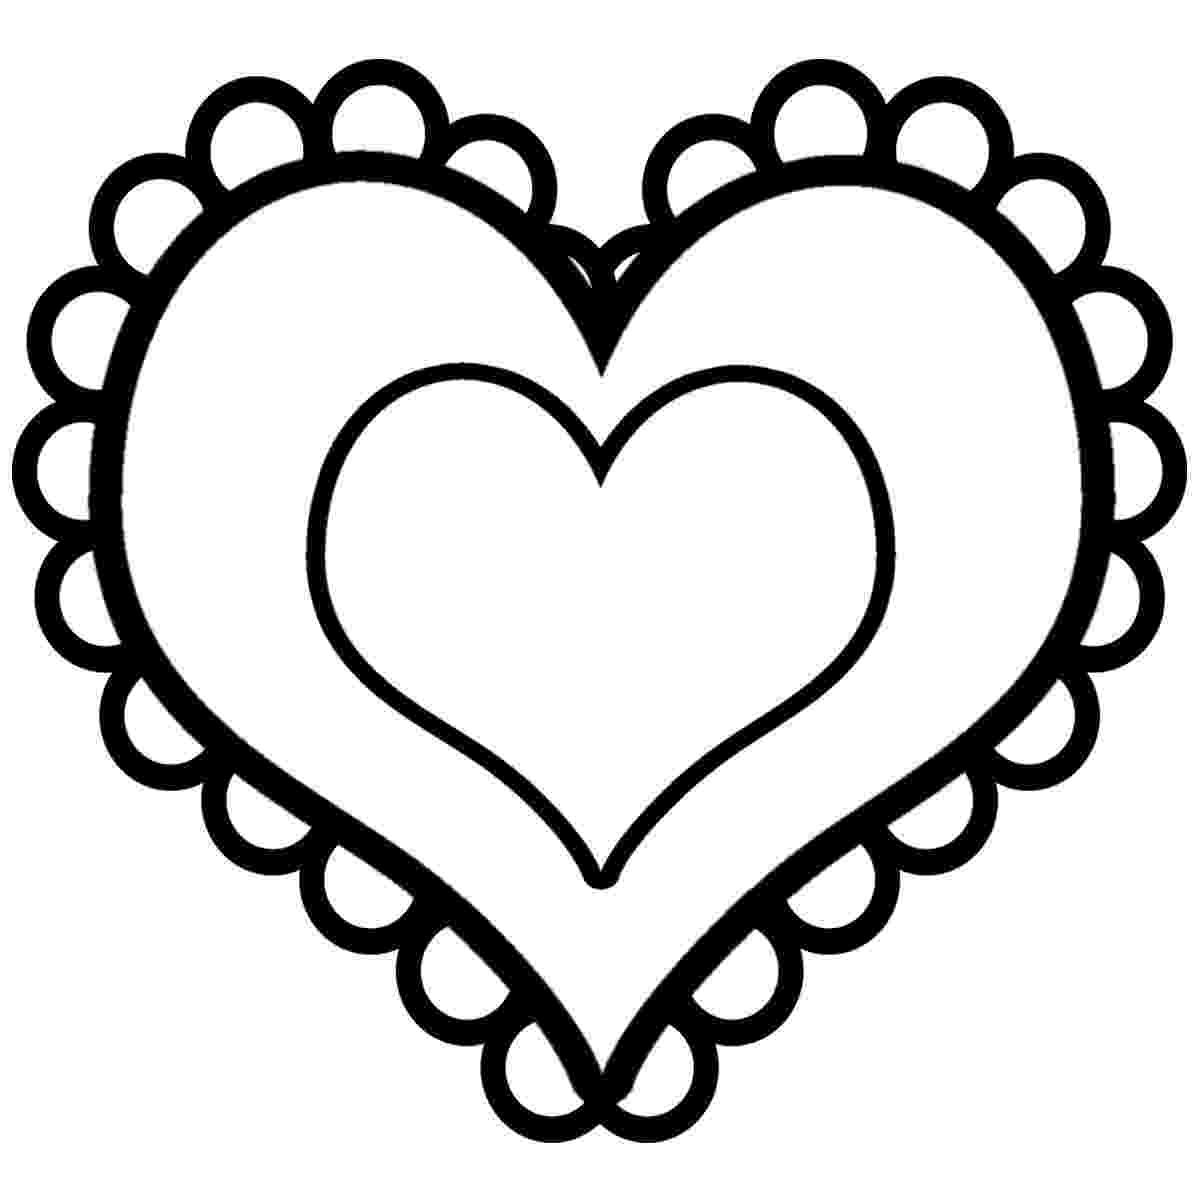 picture of hearts to color free printable heart coloring pages for kids heart picture color to hearts of